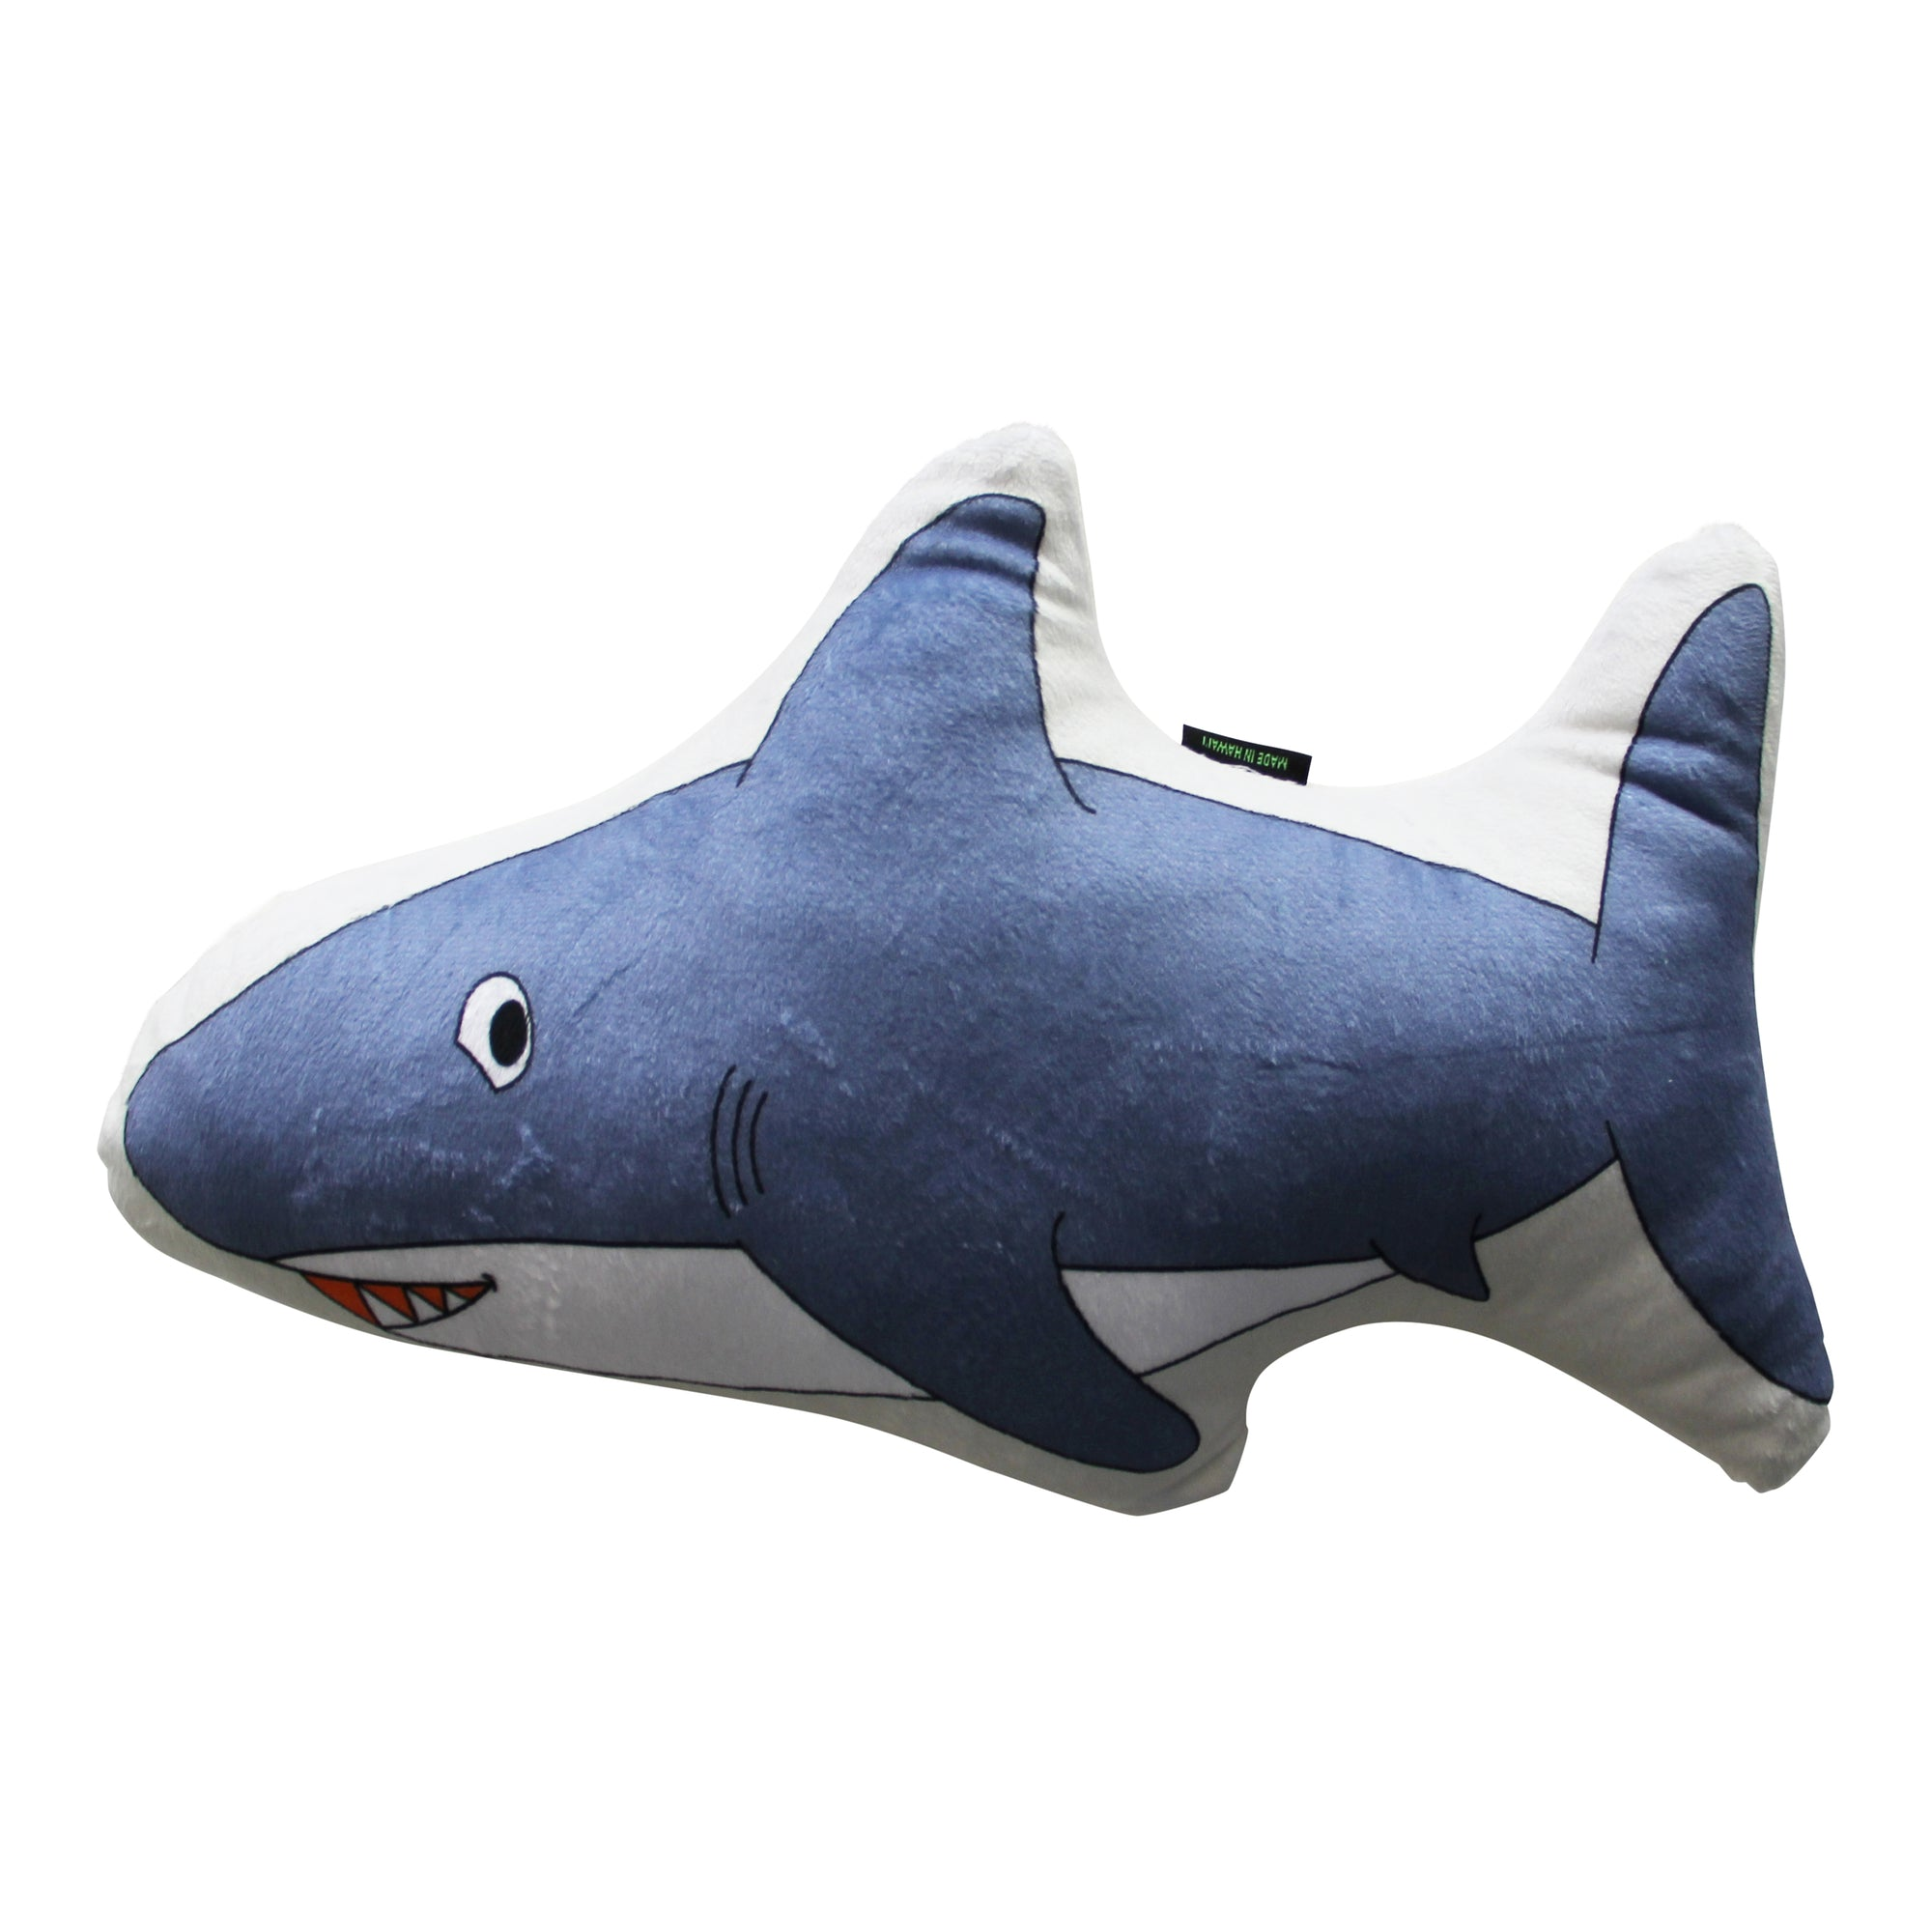 Plush pillow-Sharkie the Shark